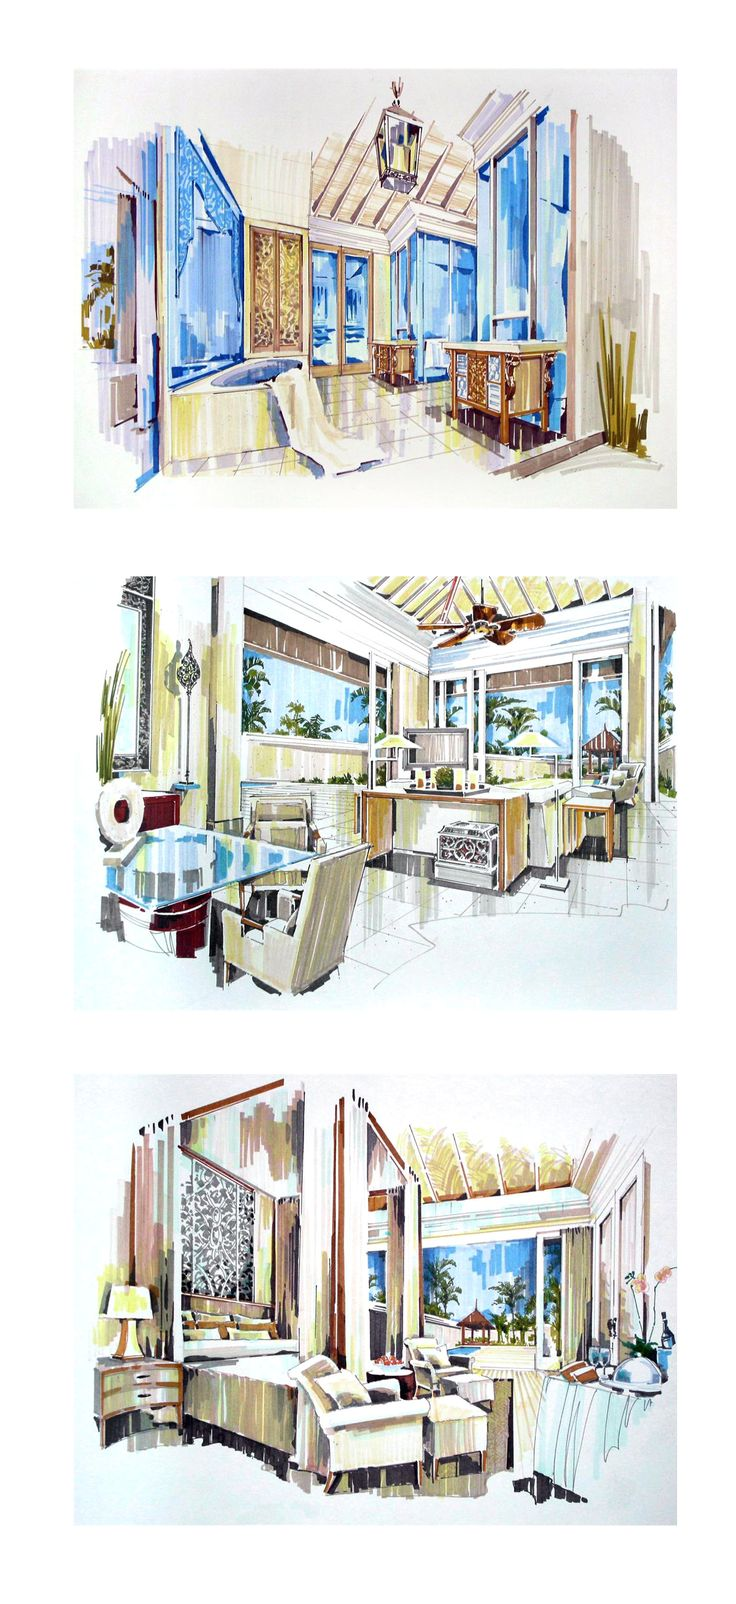 Interior design renderings. designer unknown.